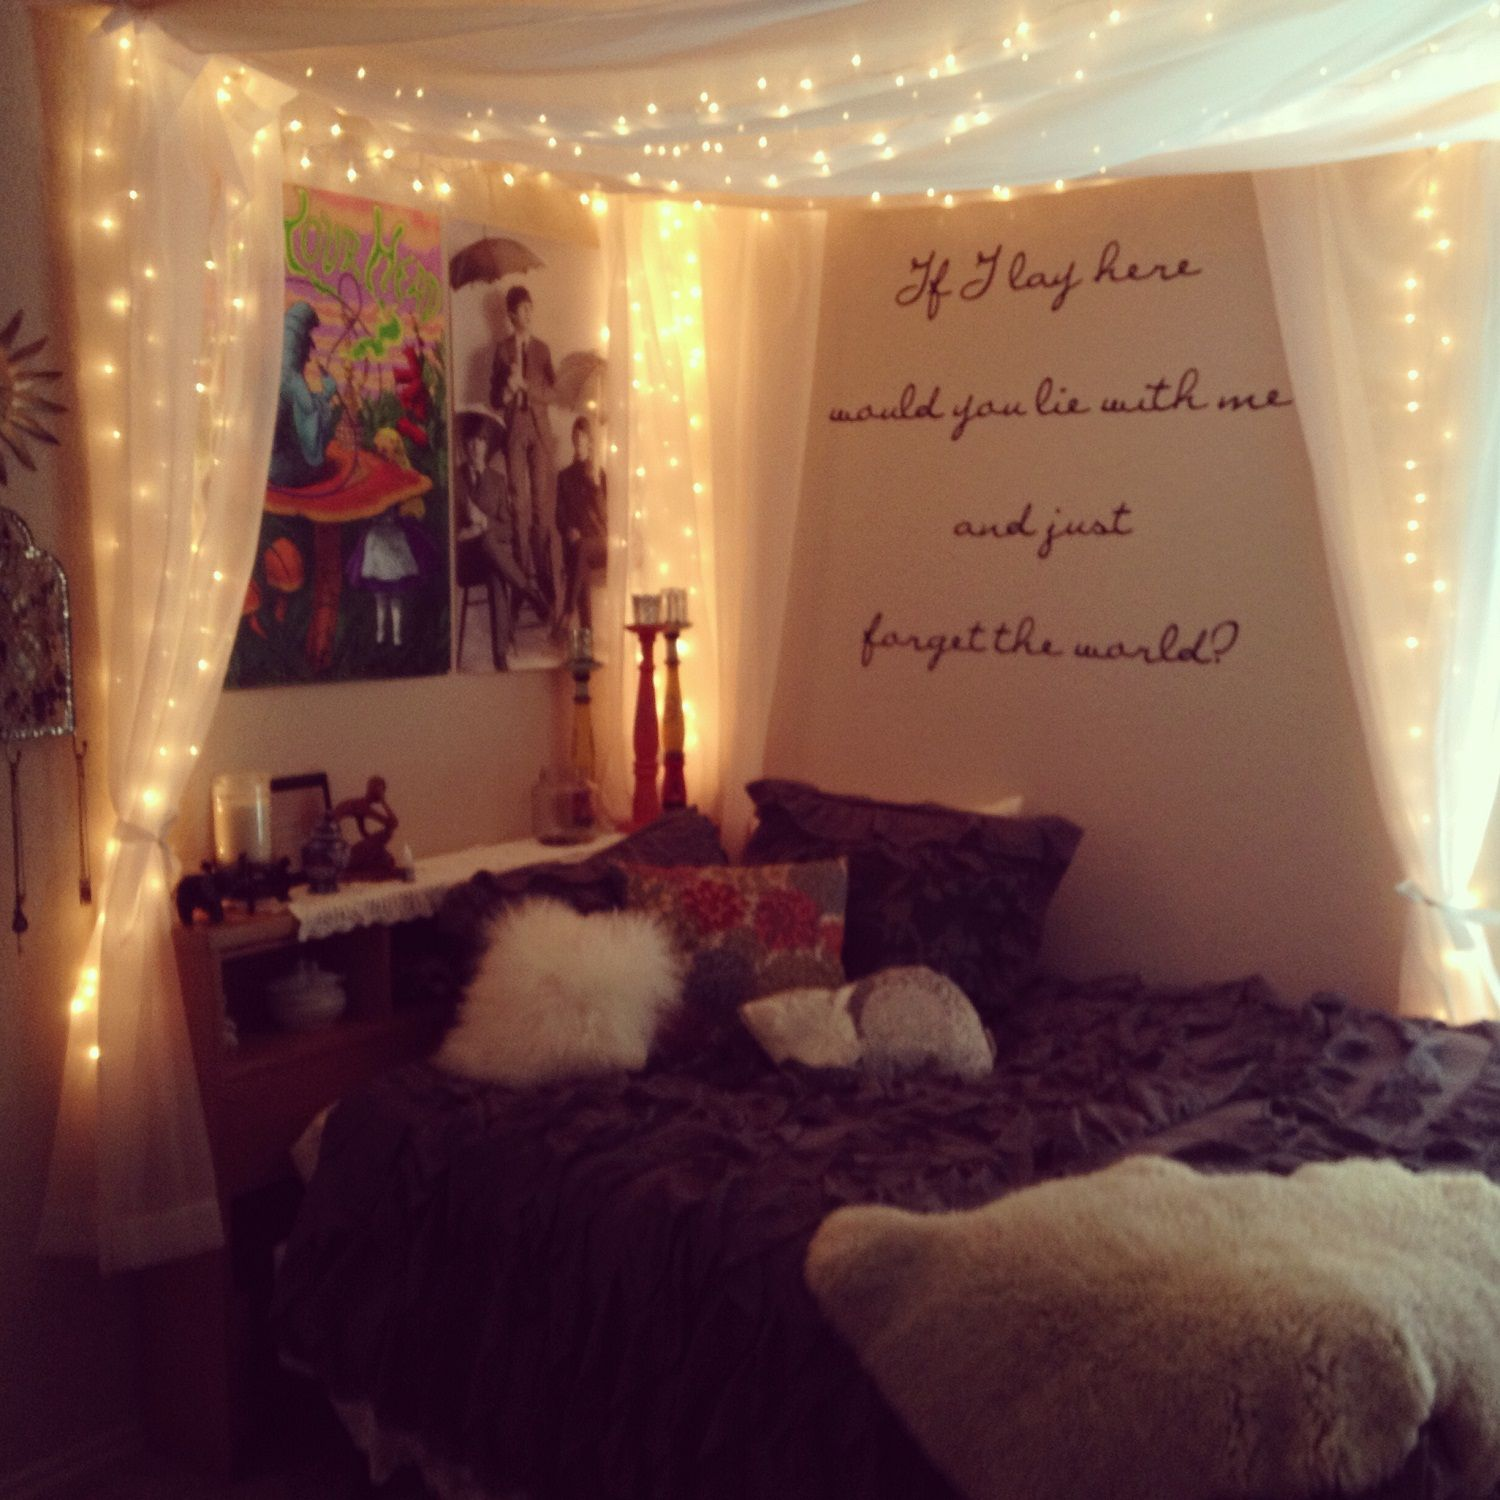 Canopy bed with lights - Decoration Small Teenage Girl Bedroom Spaces With White Canopy Bed Curtains With String Twinkle Lights Ideas Hanging Lights In Bedroom